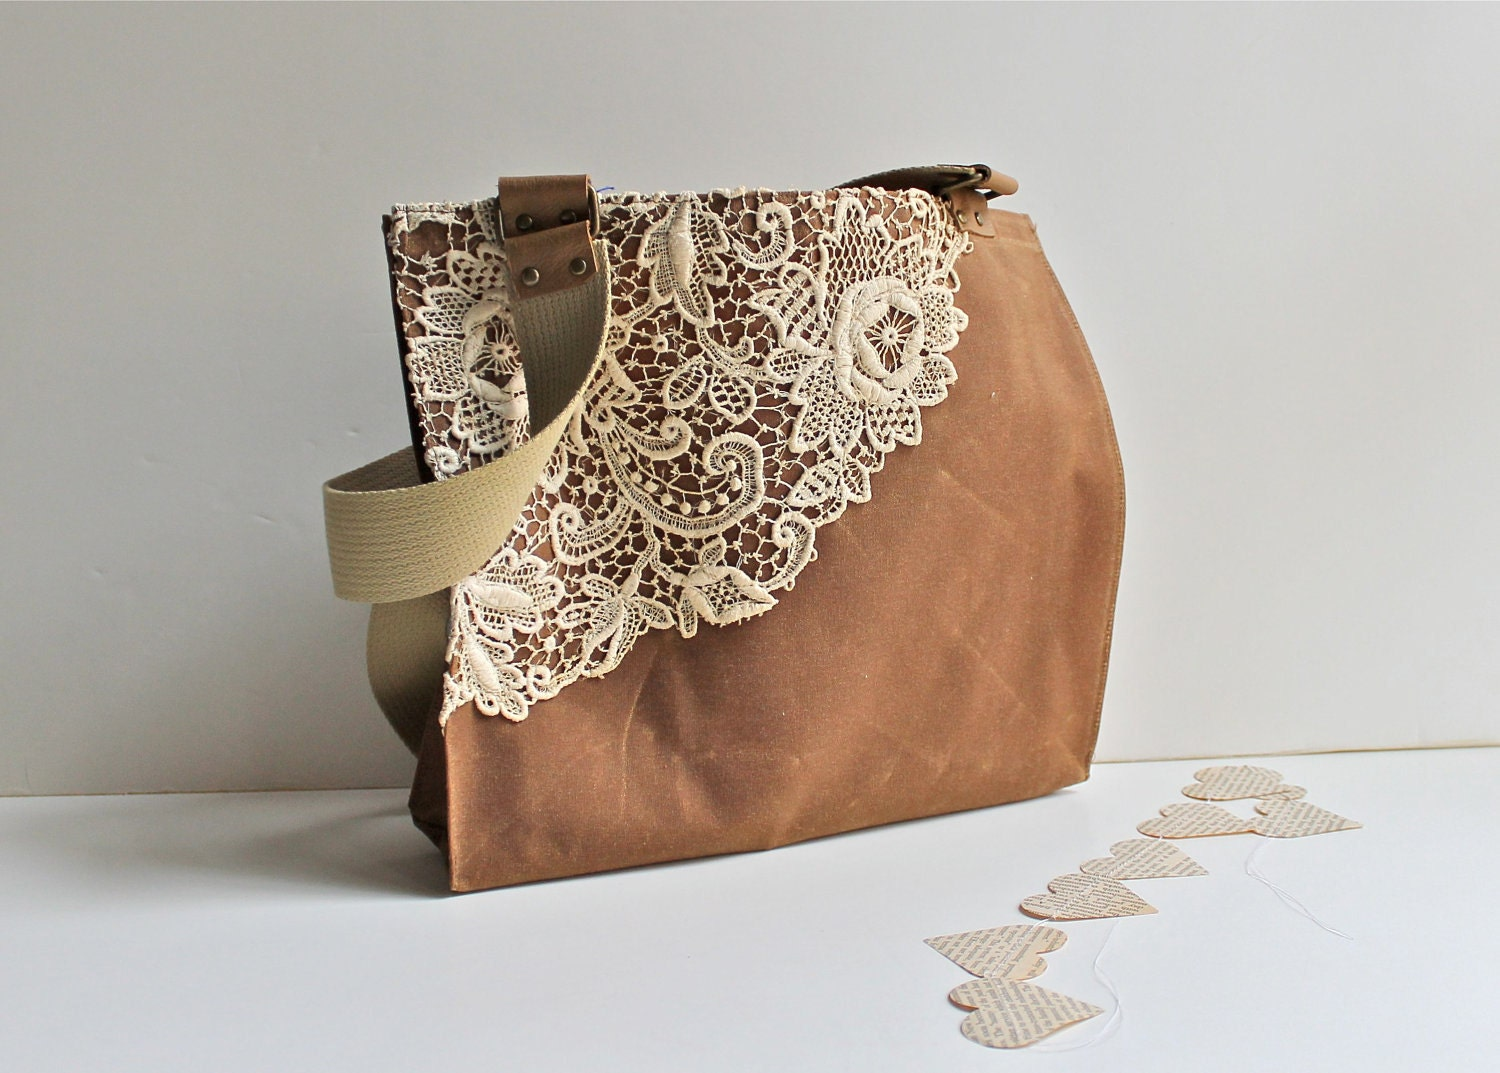 Luxury Waxed Canvas Tote Bag For Women With Vintage Lace By MomoTrees